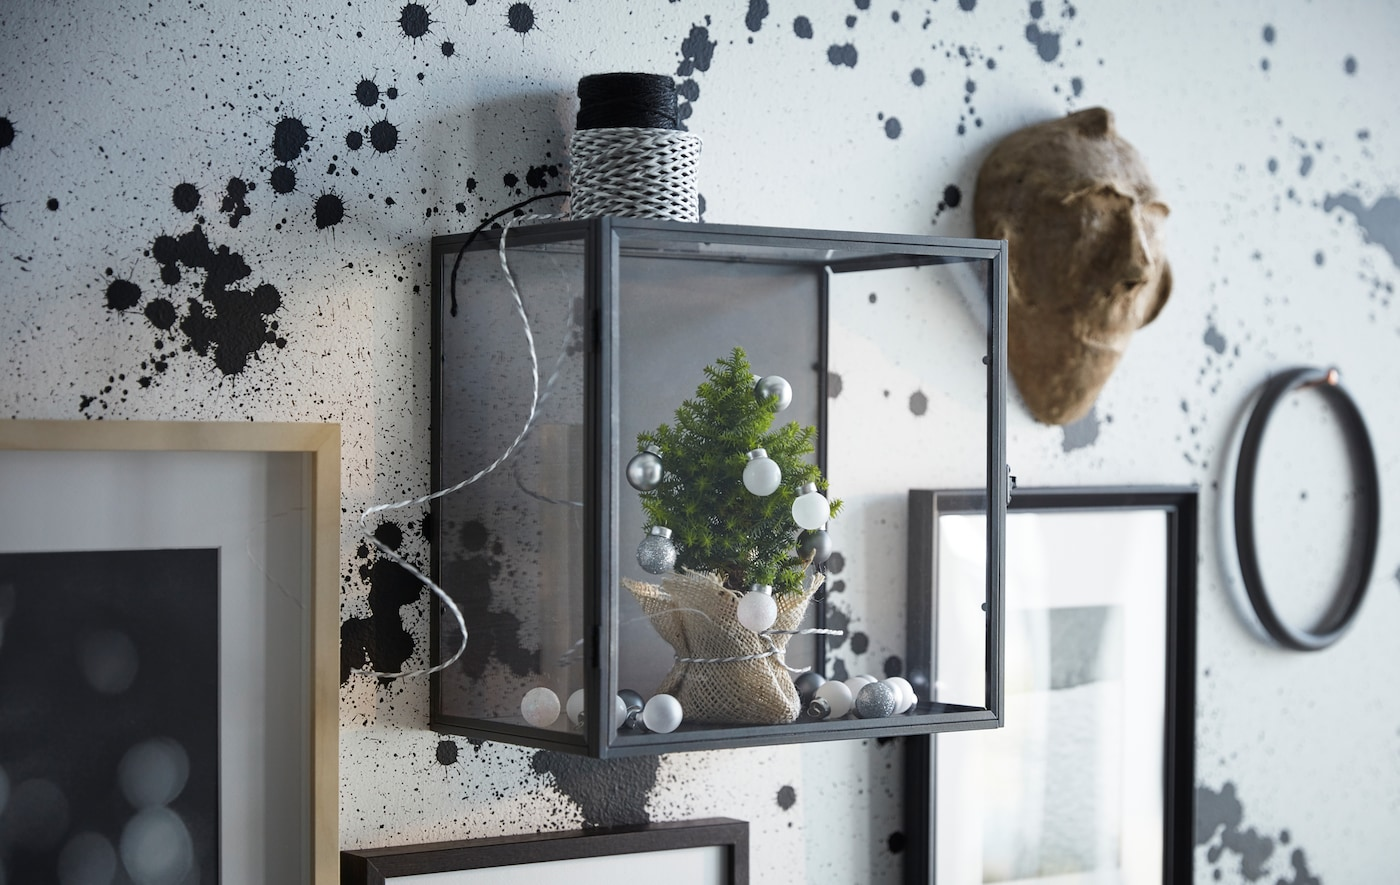 An IKEA BARKHYTTAN display box on a wall, containing a miniature tree with baubles, alongside picture frames.